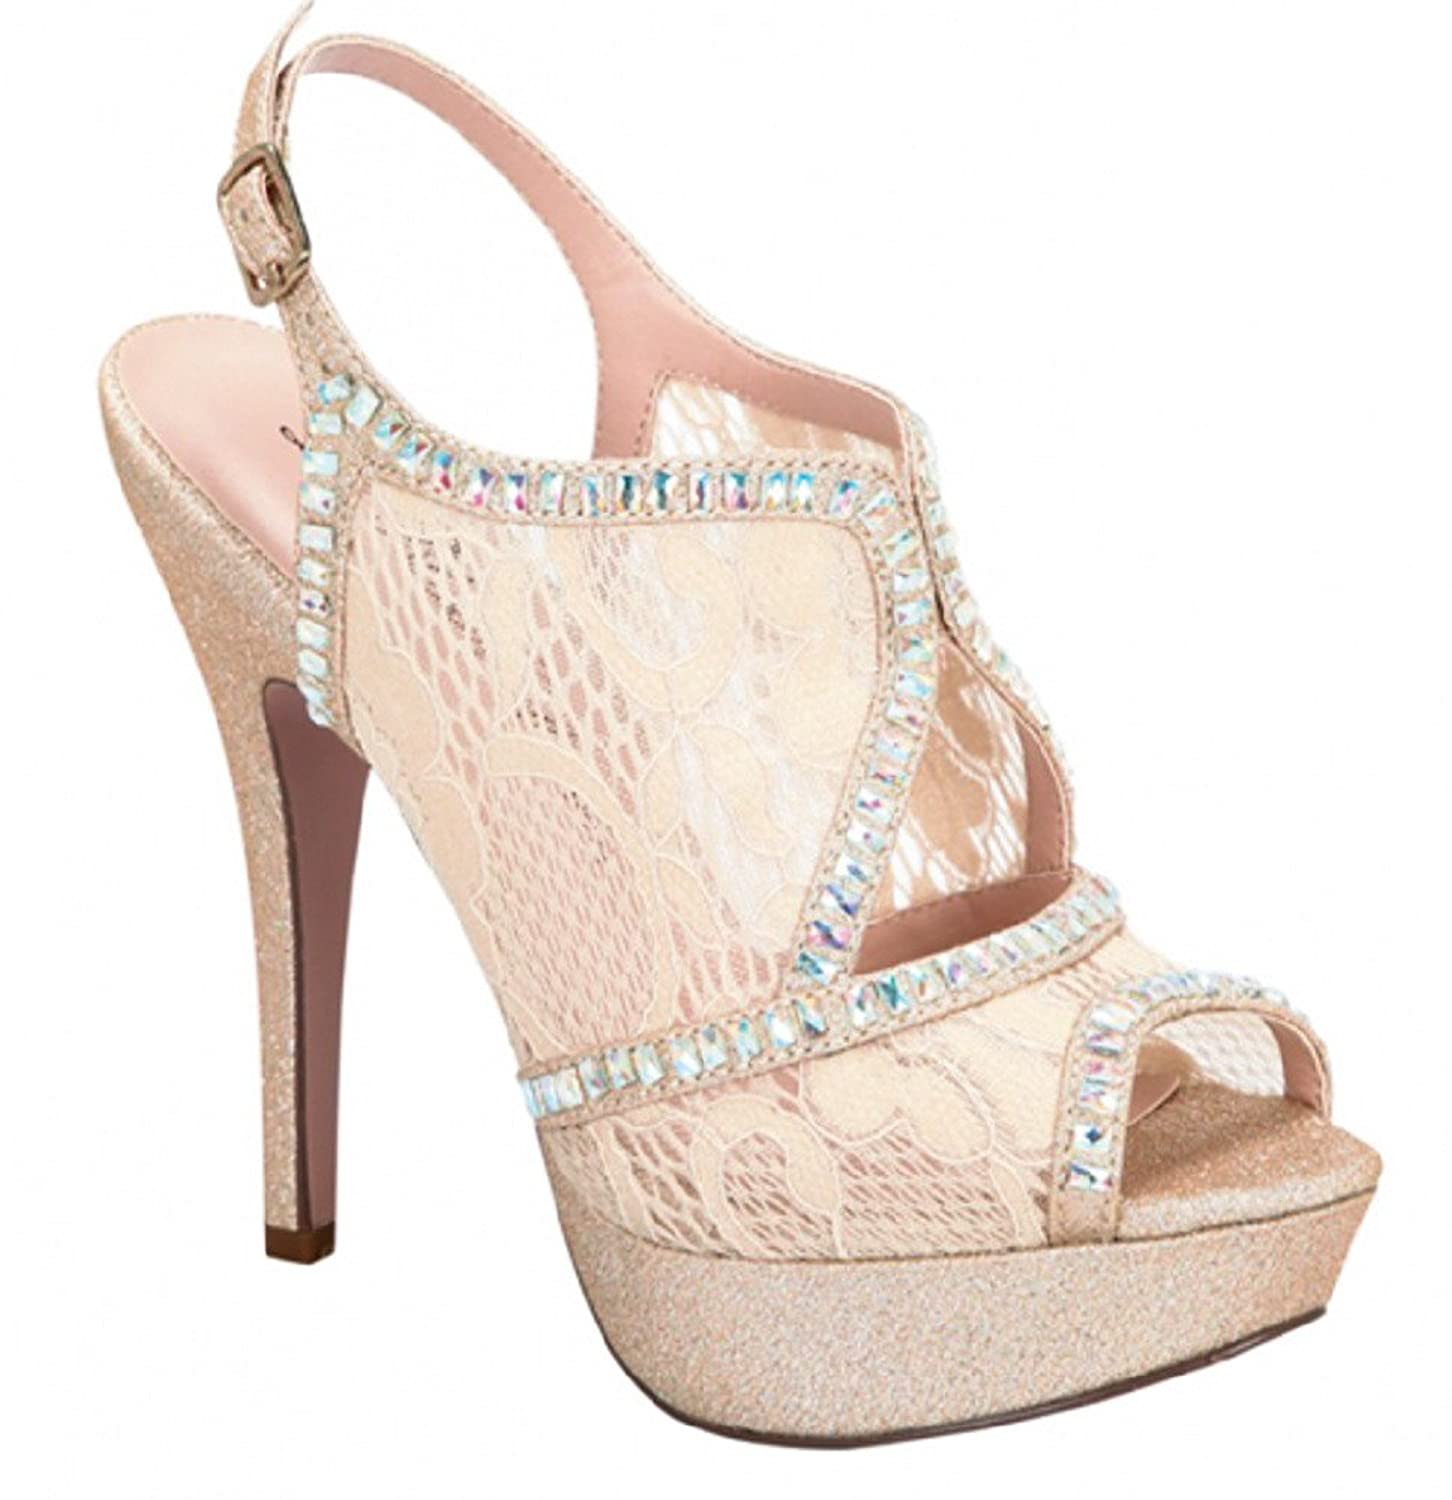 Women's Rhinestones Shoes + FREE SHIPPING |